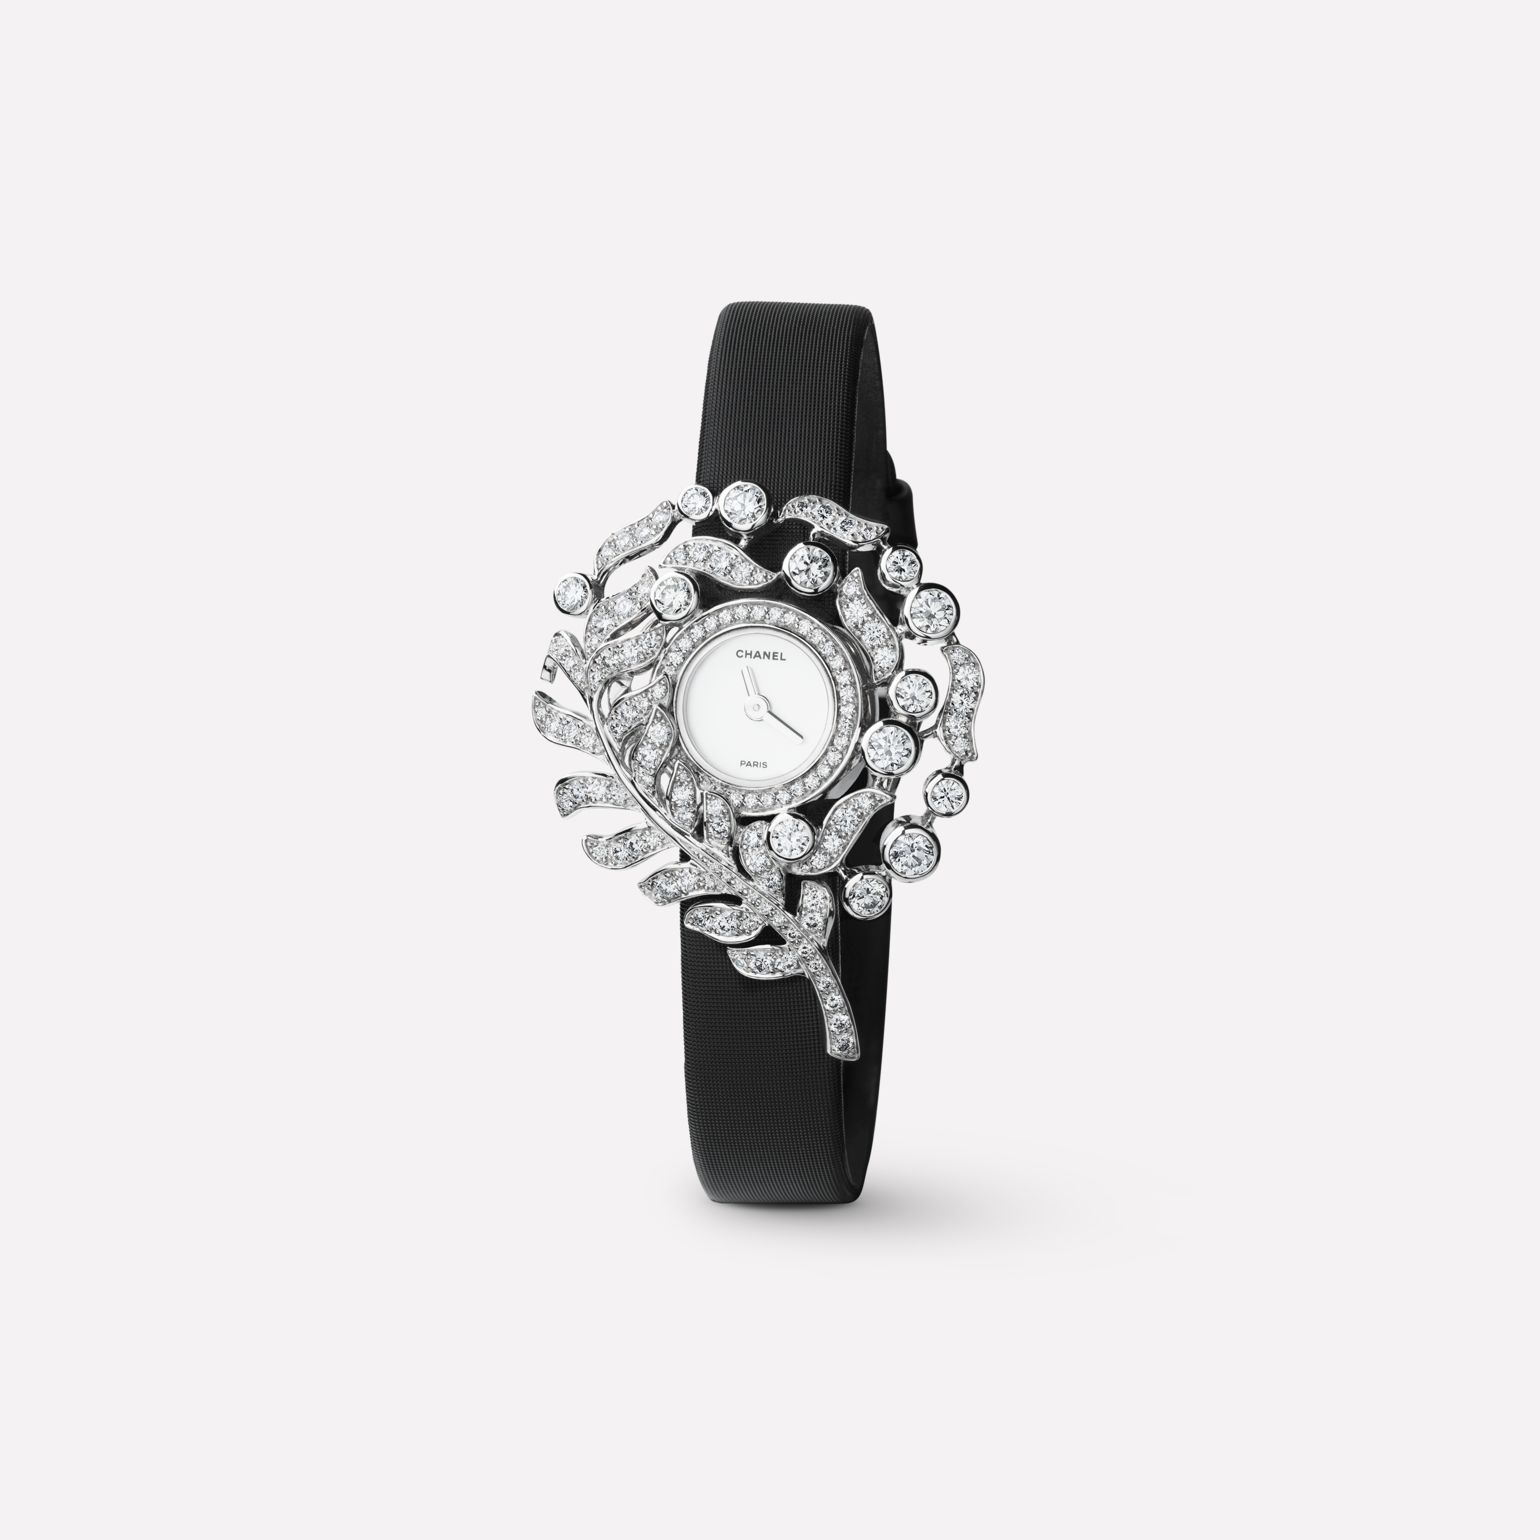 Plume de CHANEL Jewelry Watch Feather motif in 18K white gold and diamonds